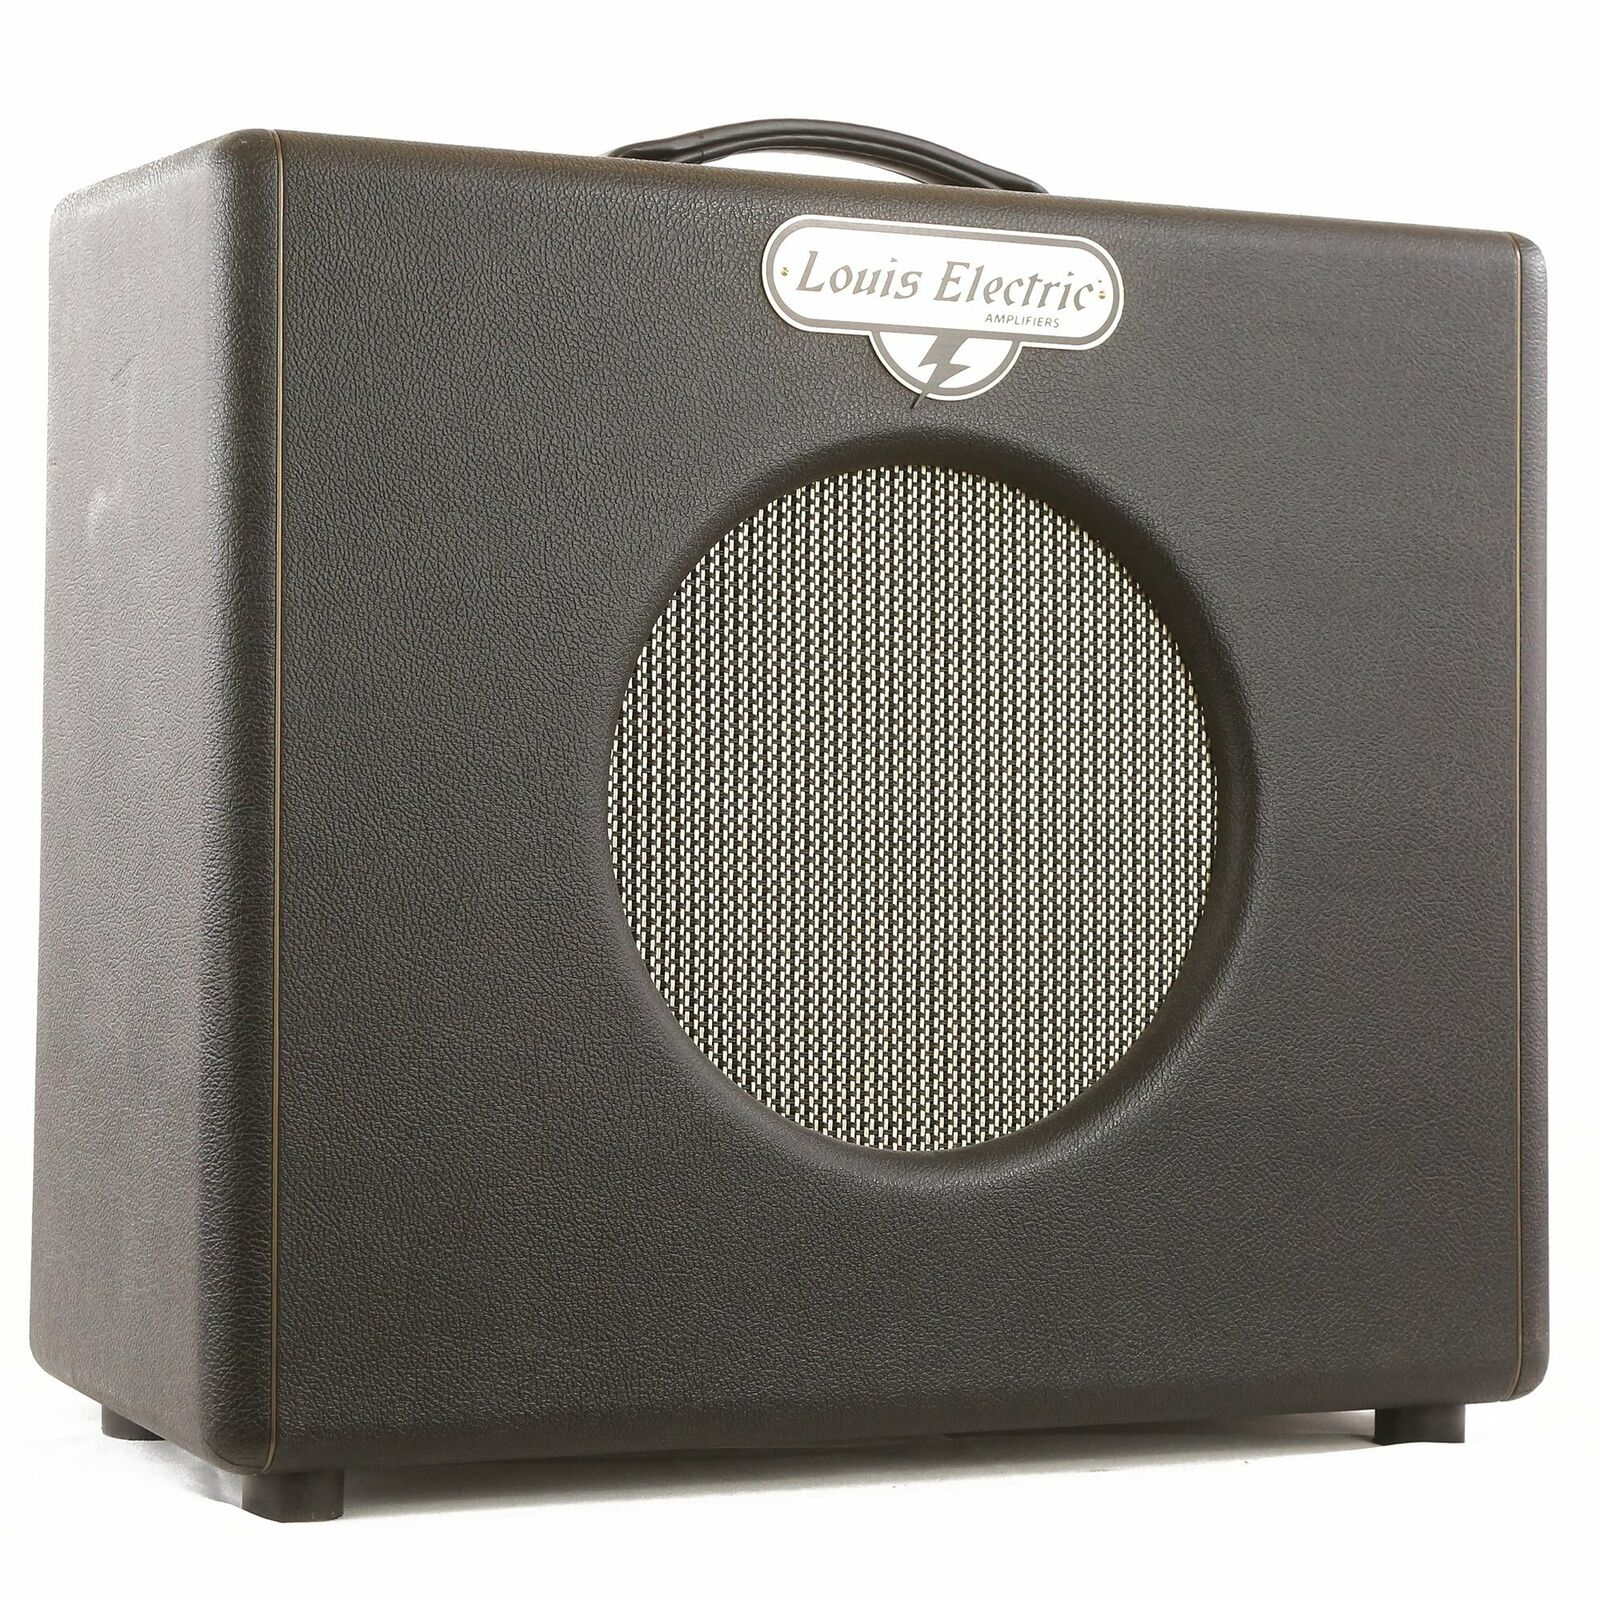 Louis Electric KR12 1x12 Combo Guitar Amplifier. Available Now for 2199.00